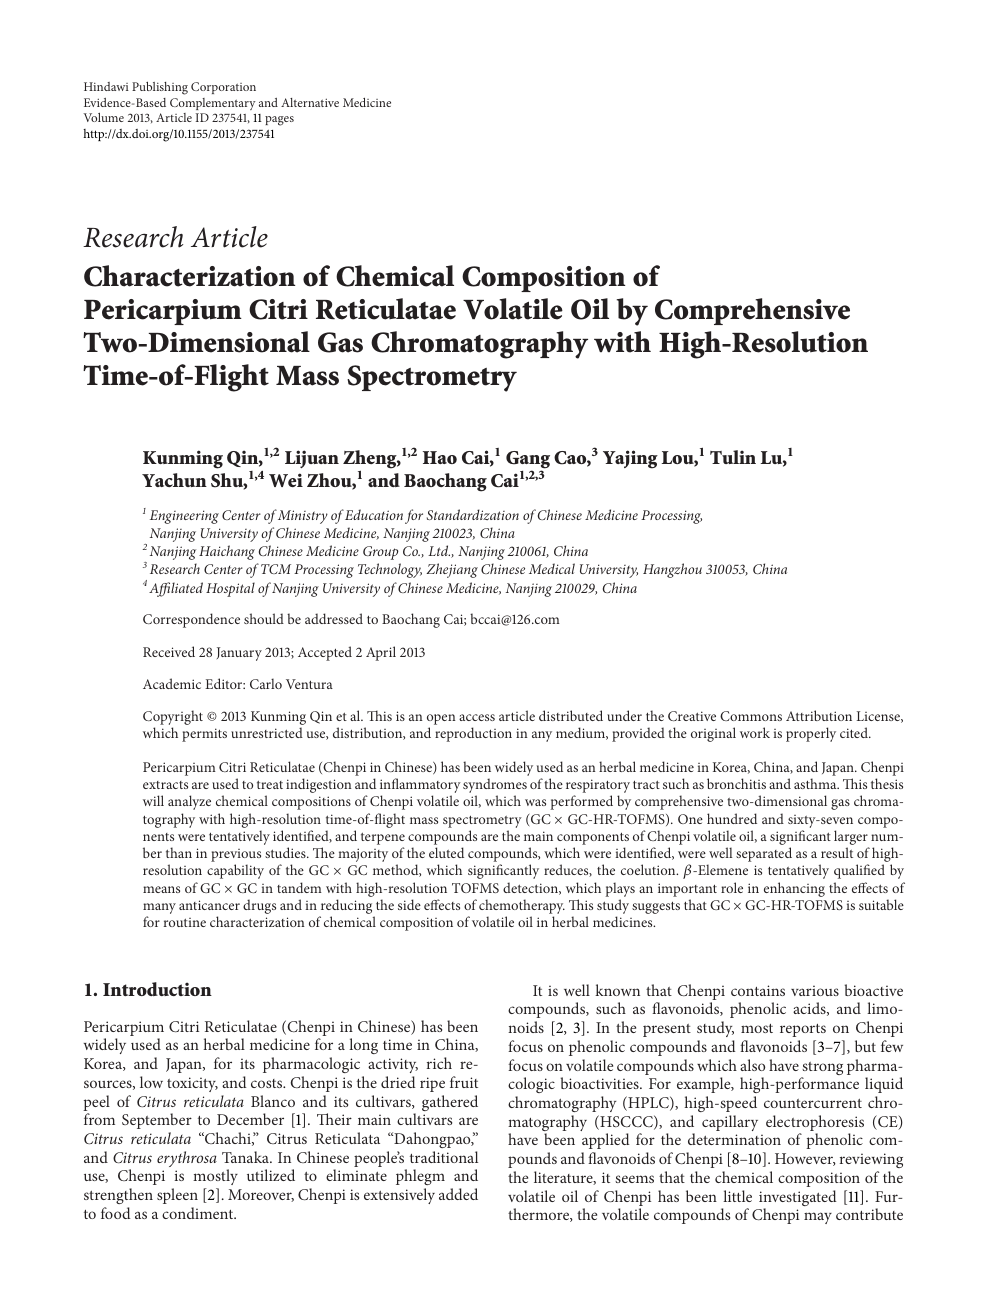 Characterization of Chemical Composition of Pericarpium